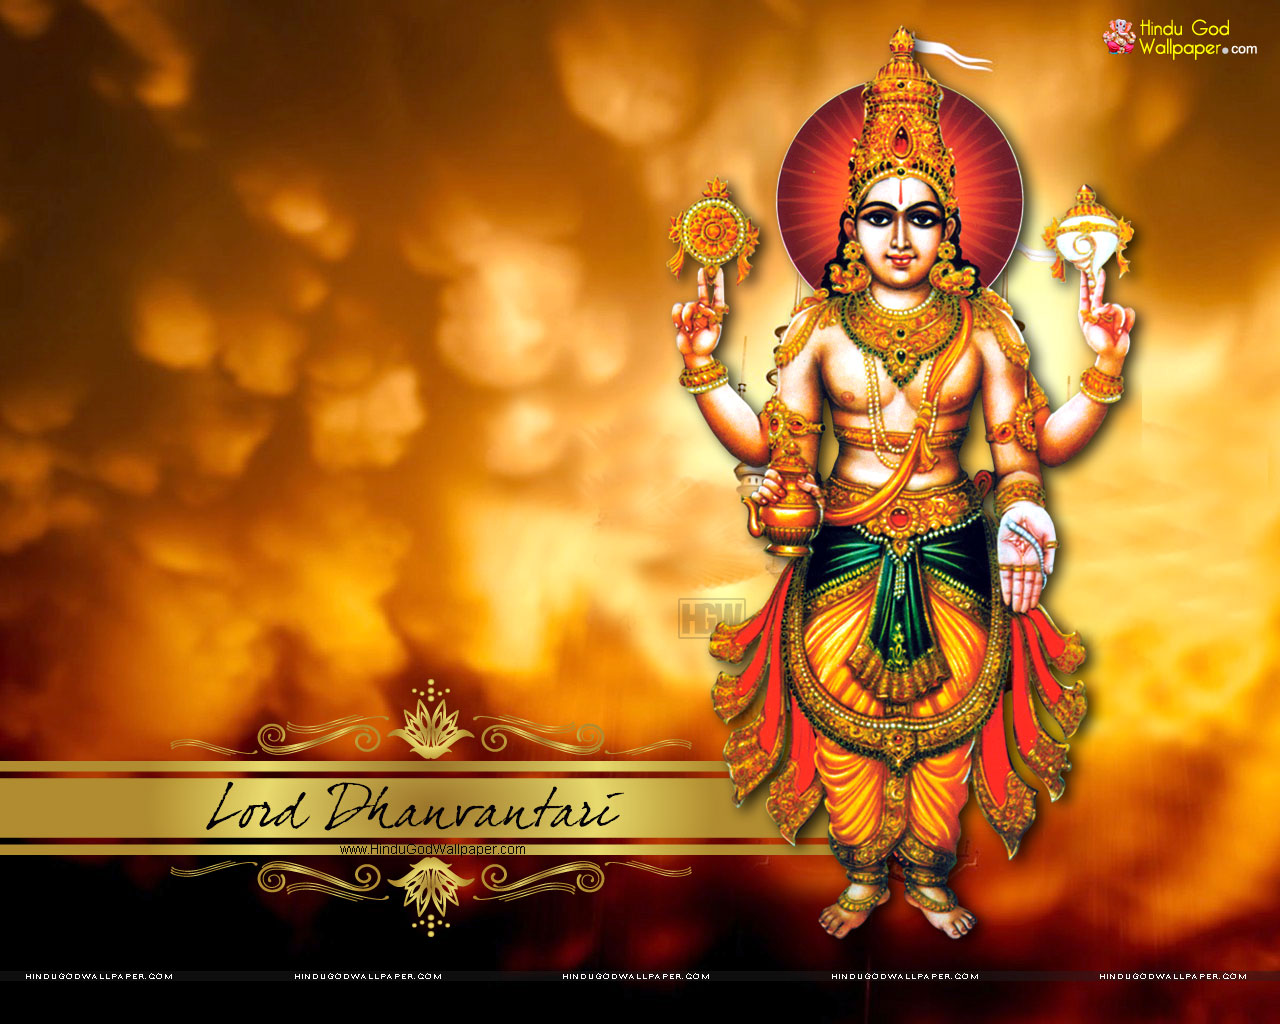 Hindu god wallpapers nature wallpaper all free download - God images wallpapers ...